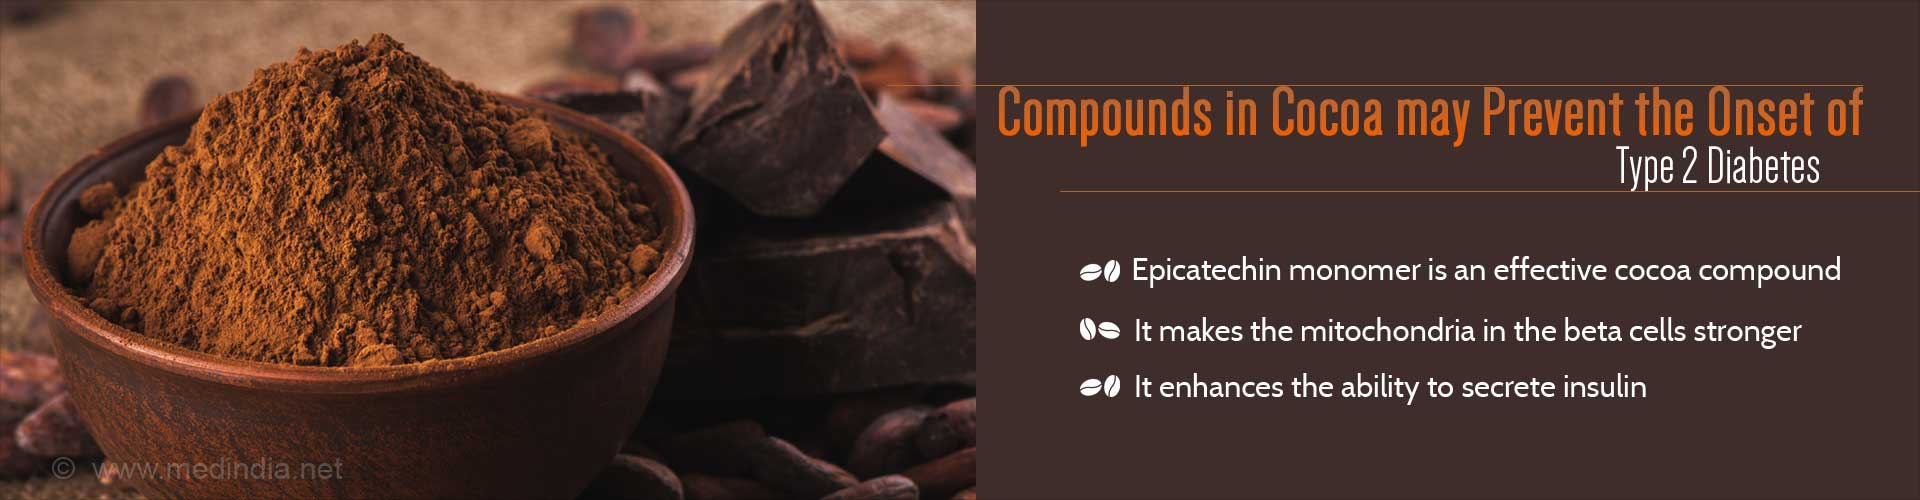 Chocolates can Help Prevent and Treat Type 2 Diabetes